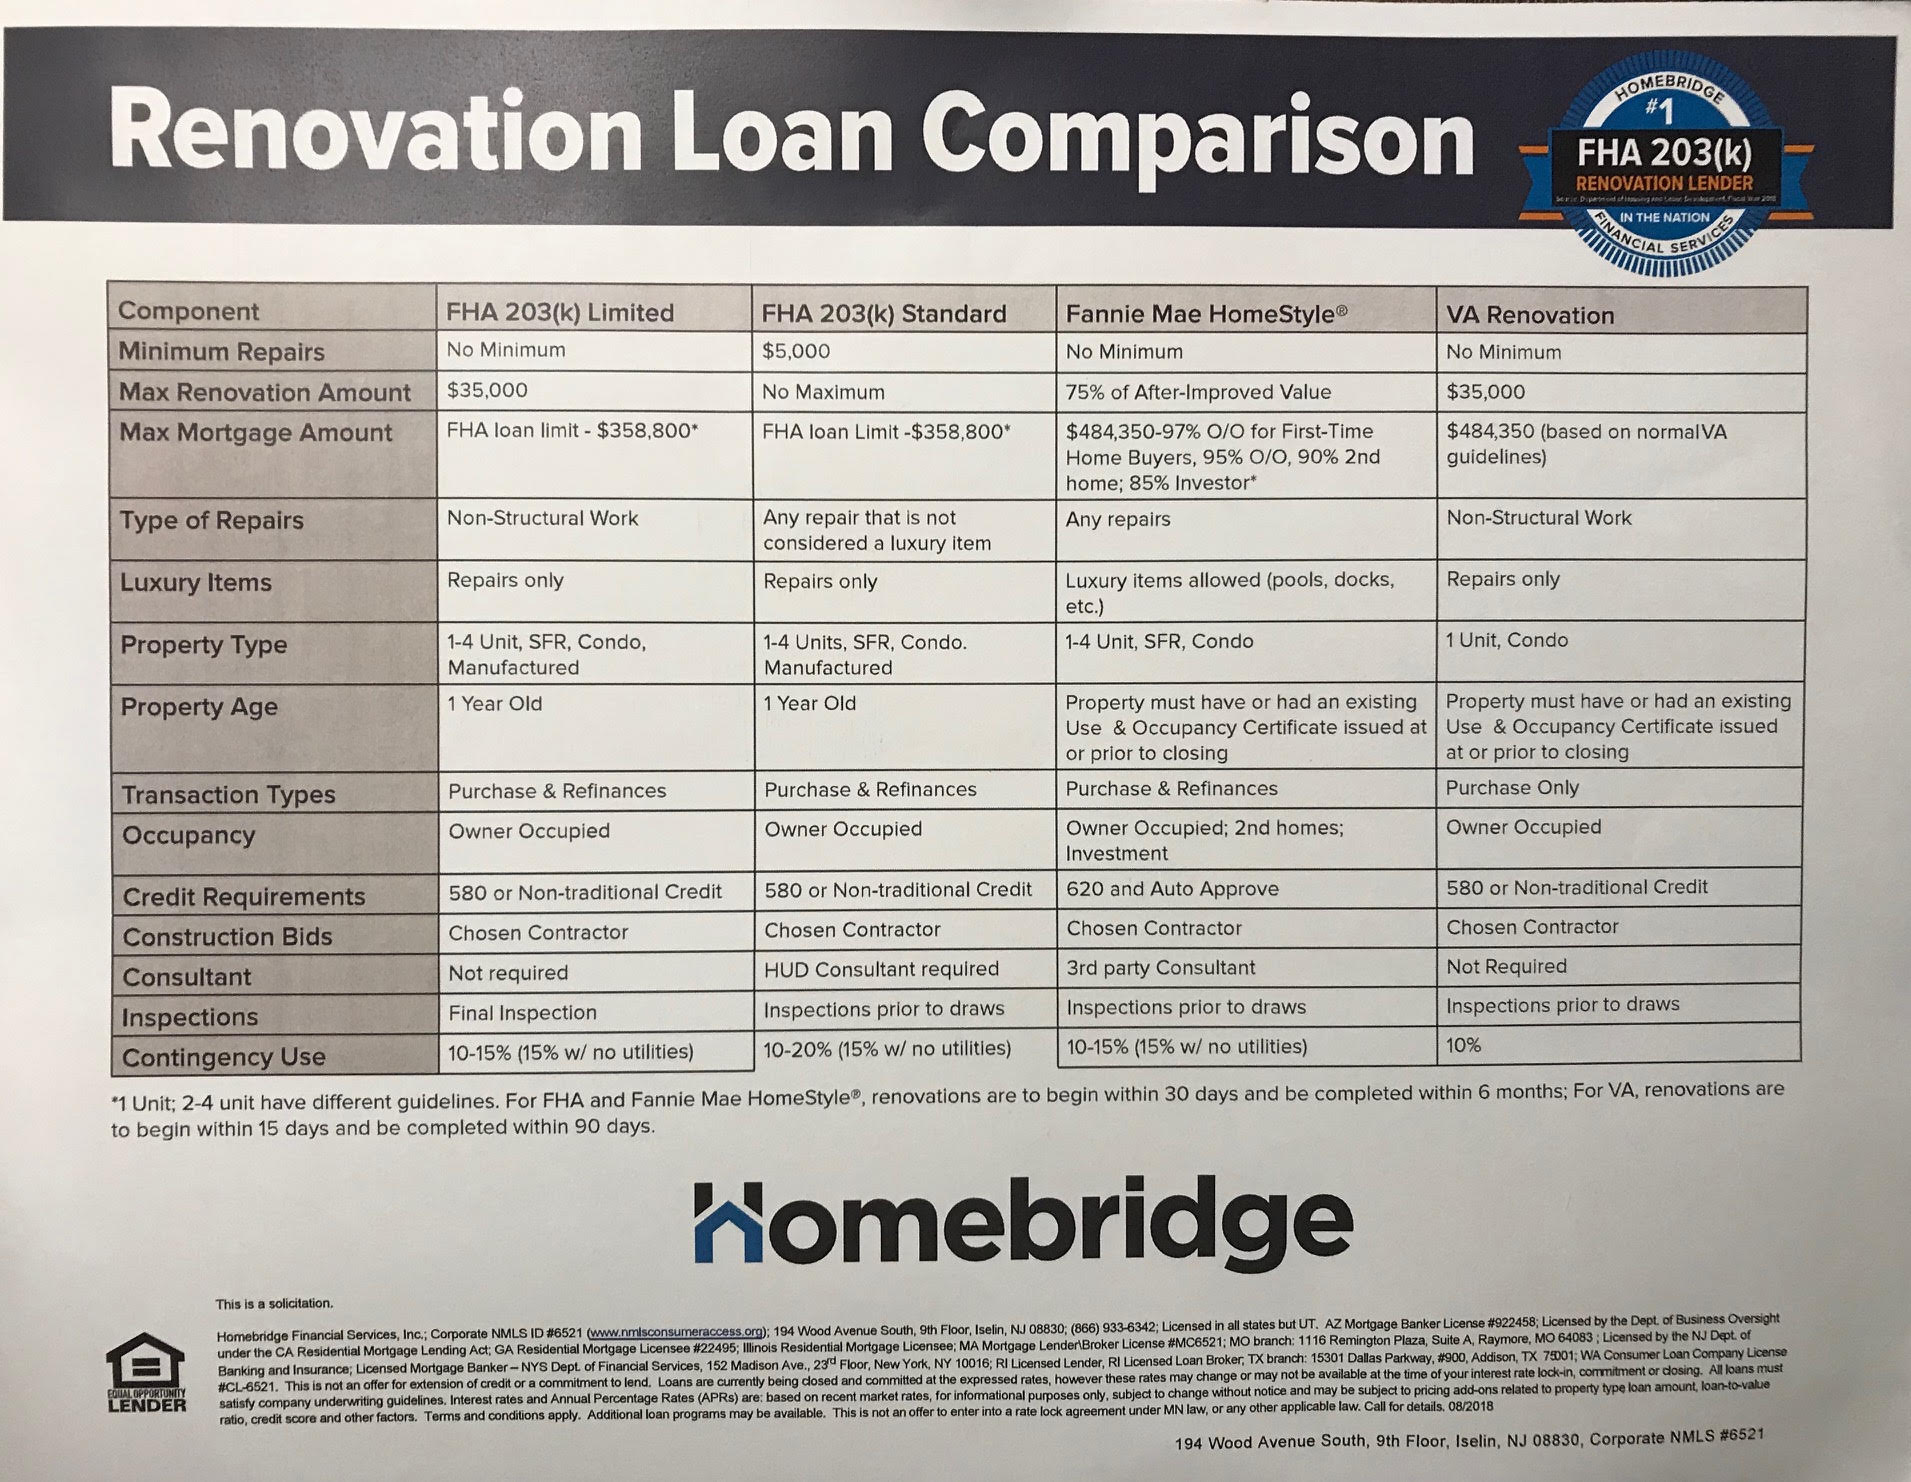 RenovationLoanComparison.jpg